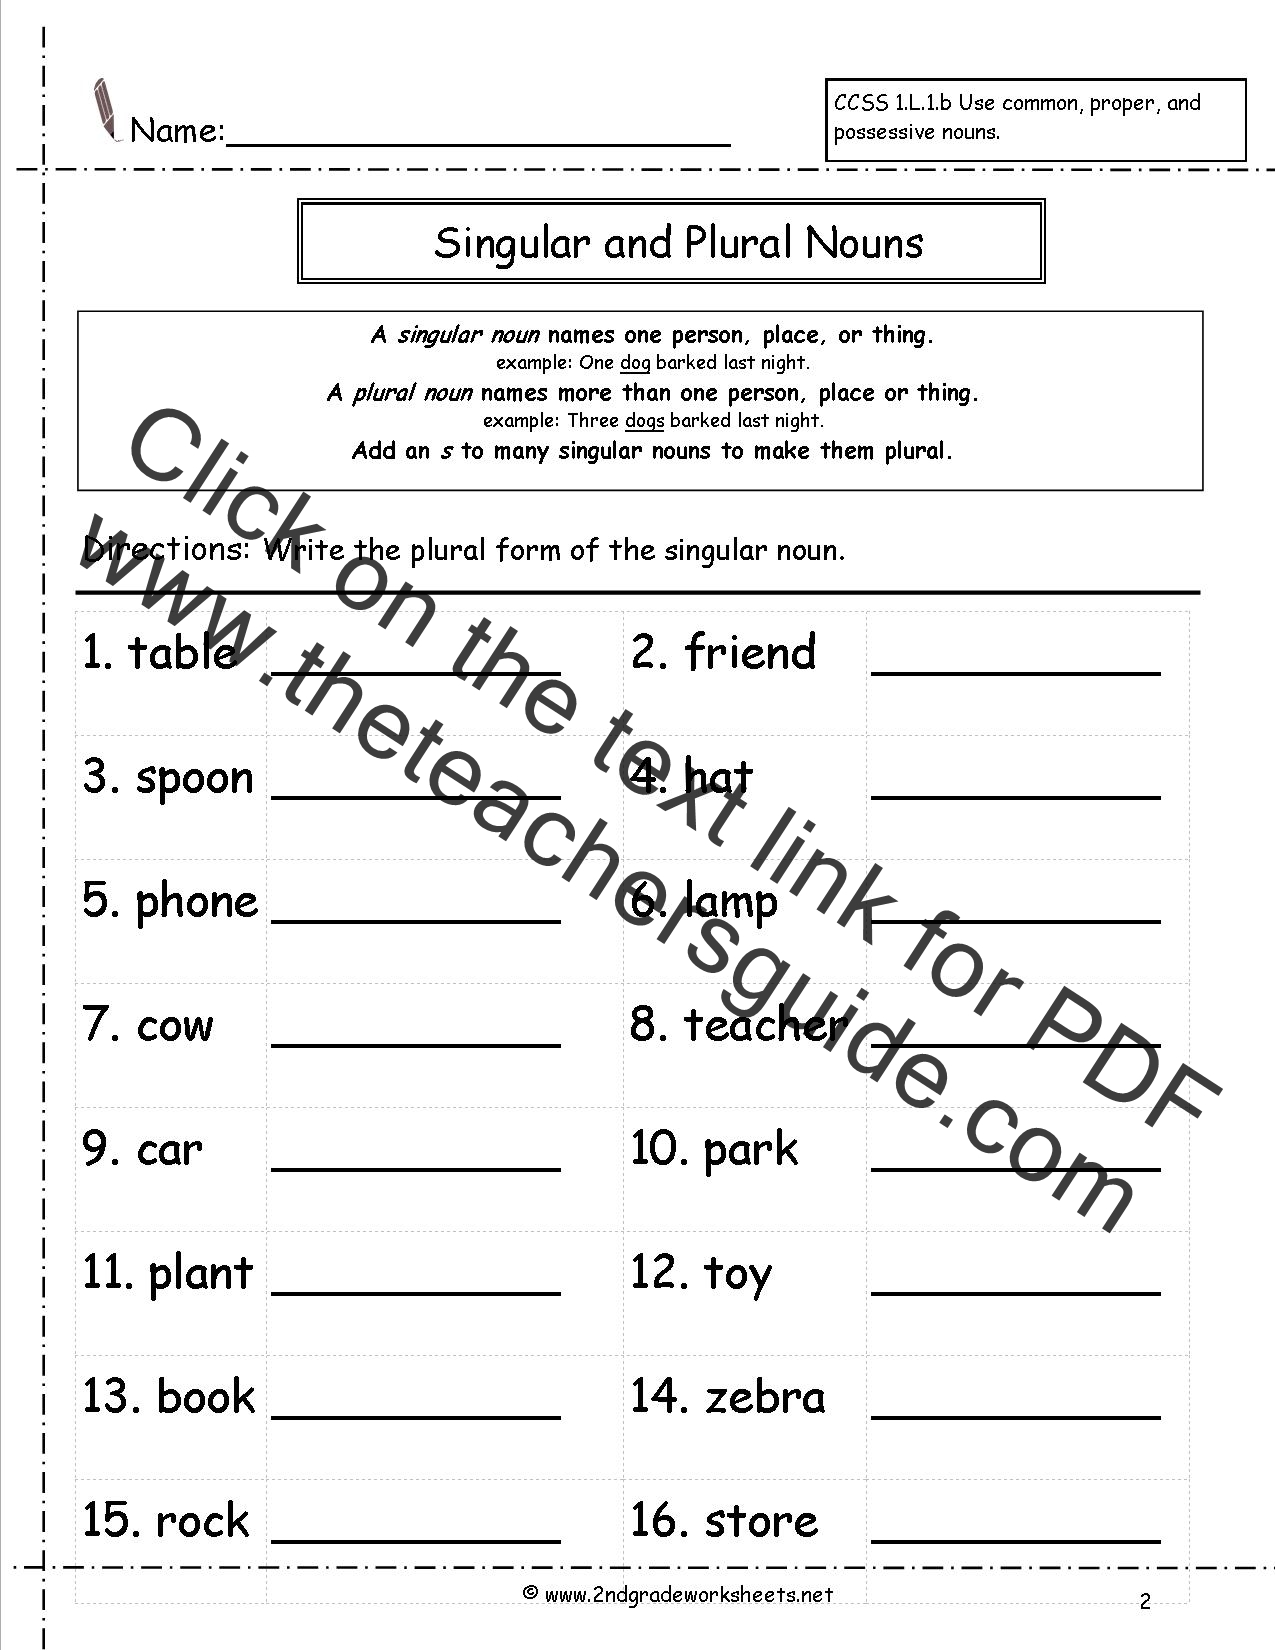 Worksheets Making Nouns Plural Worksheet singular and plural nouns worksheets worksheet